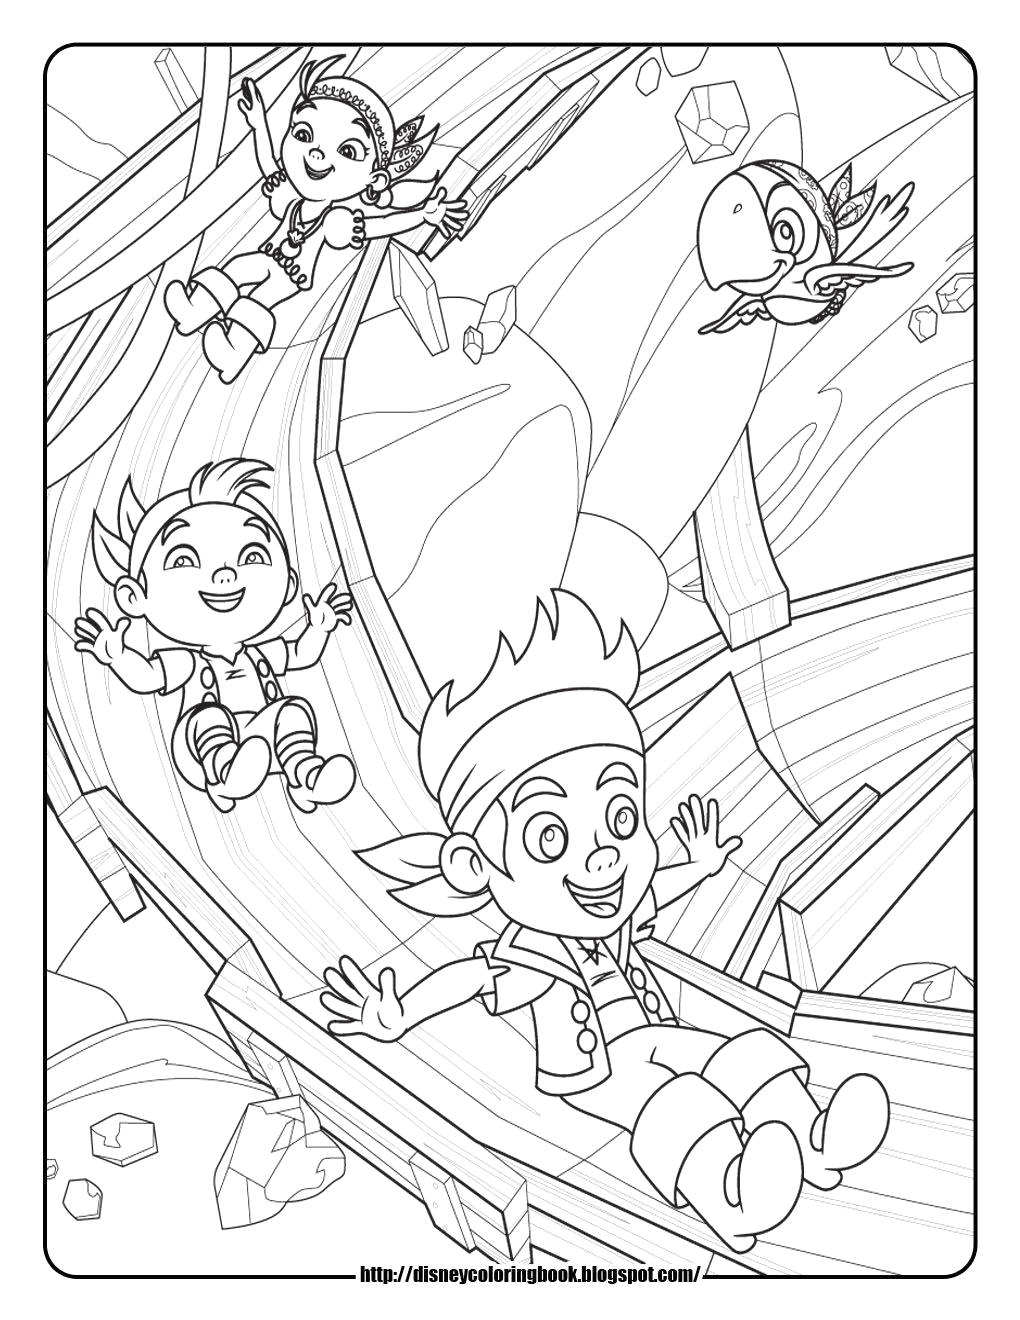 Jake and the Neverland Pirates Peter Pan Coloring Pages Coloring Page Jake the Pirate Coloring Home